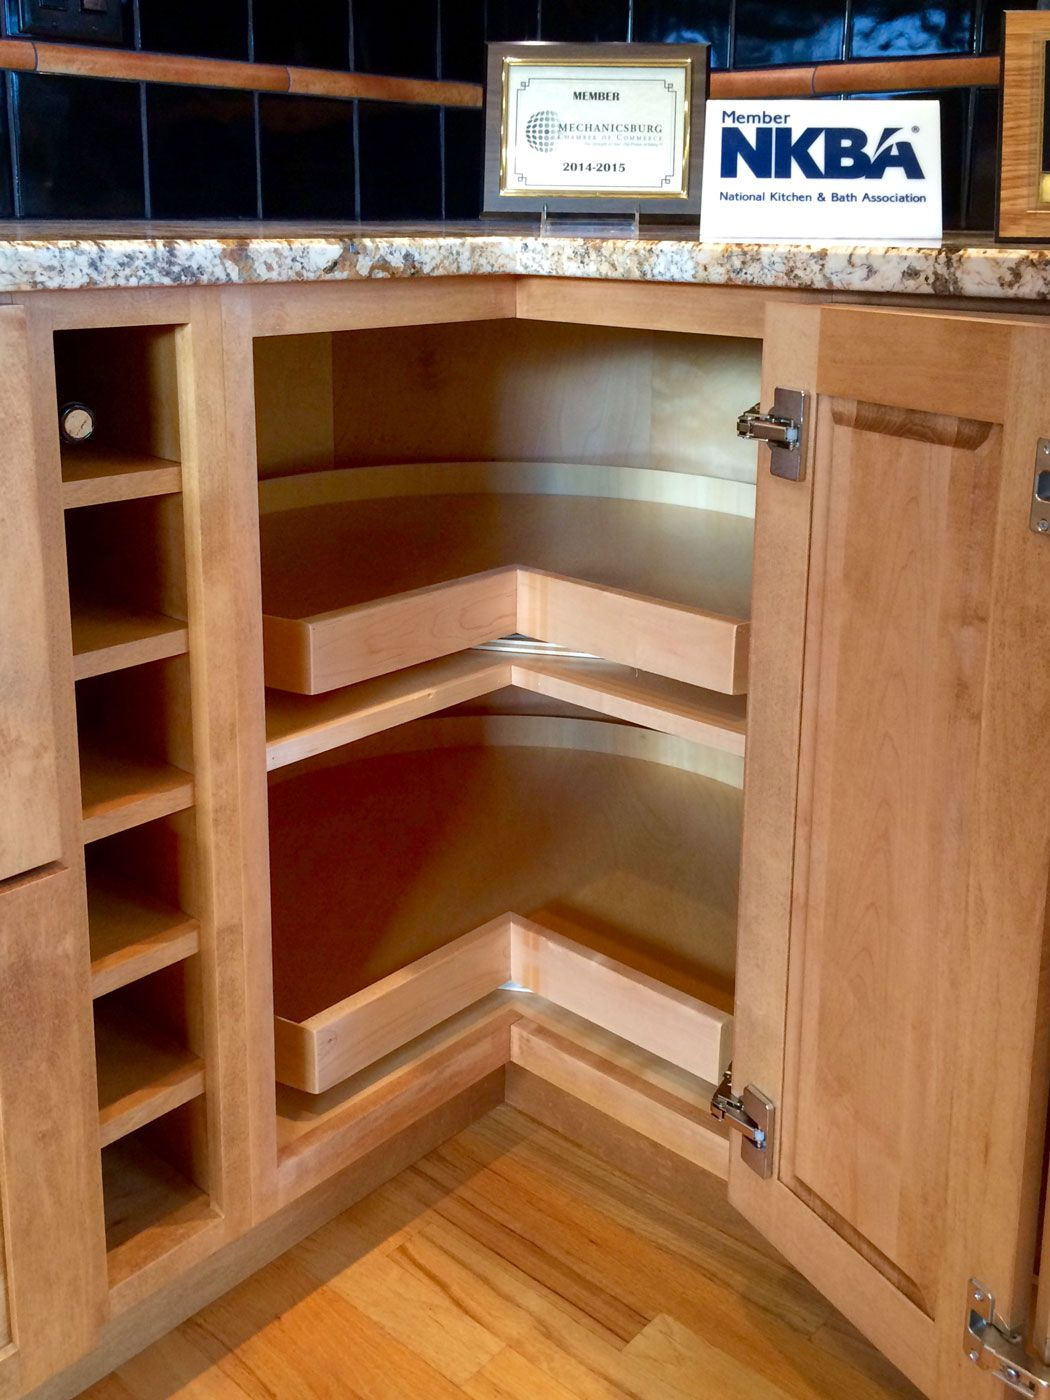 5 Solutions For Your Corner Cabinet Storage Needs. Mother Hubbardu0027s Custom Cabinetry explains what we do to solve the corner cabinet dilemma & 5 Solutions For Your Corner Cabinet Storage Needs. Mother Hubbardu0027s ...